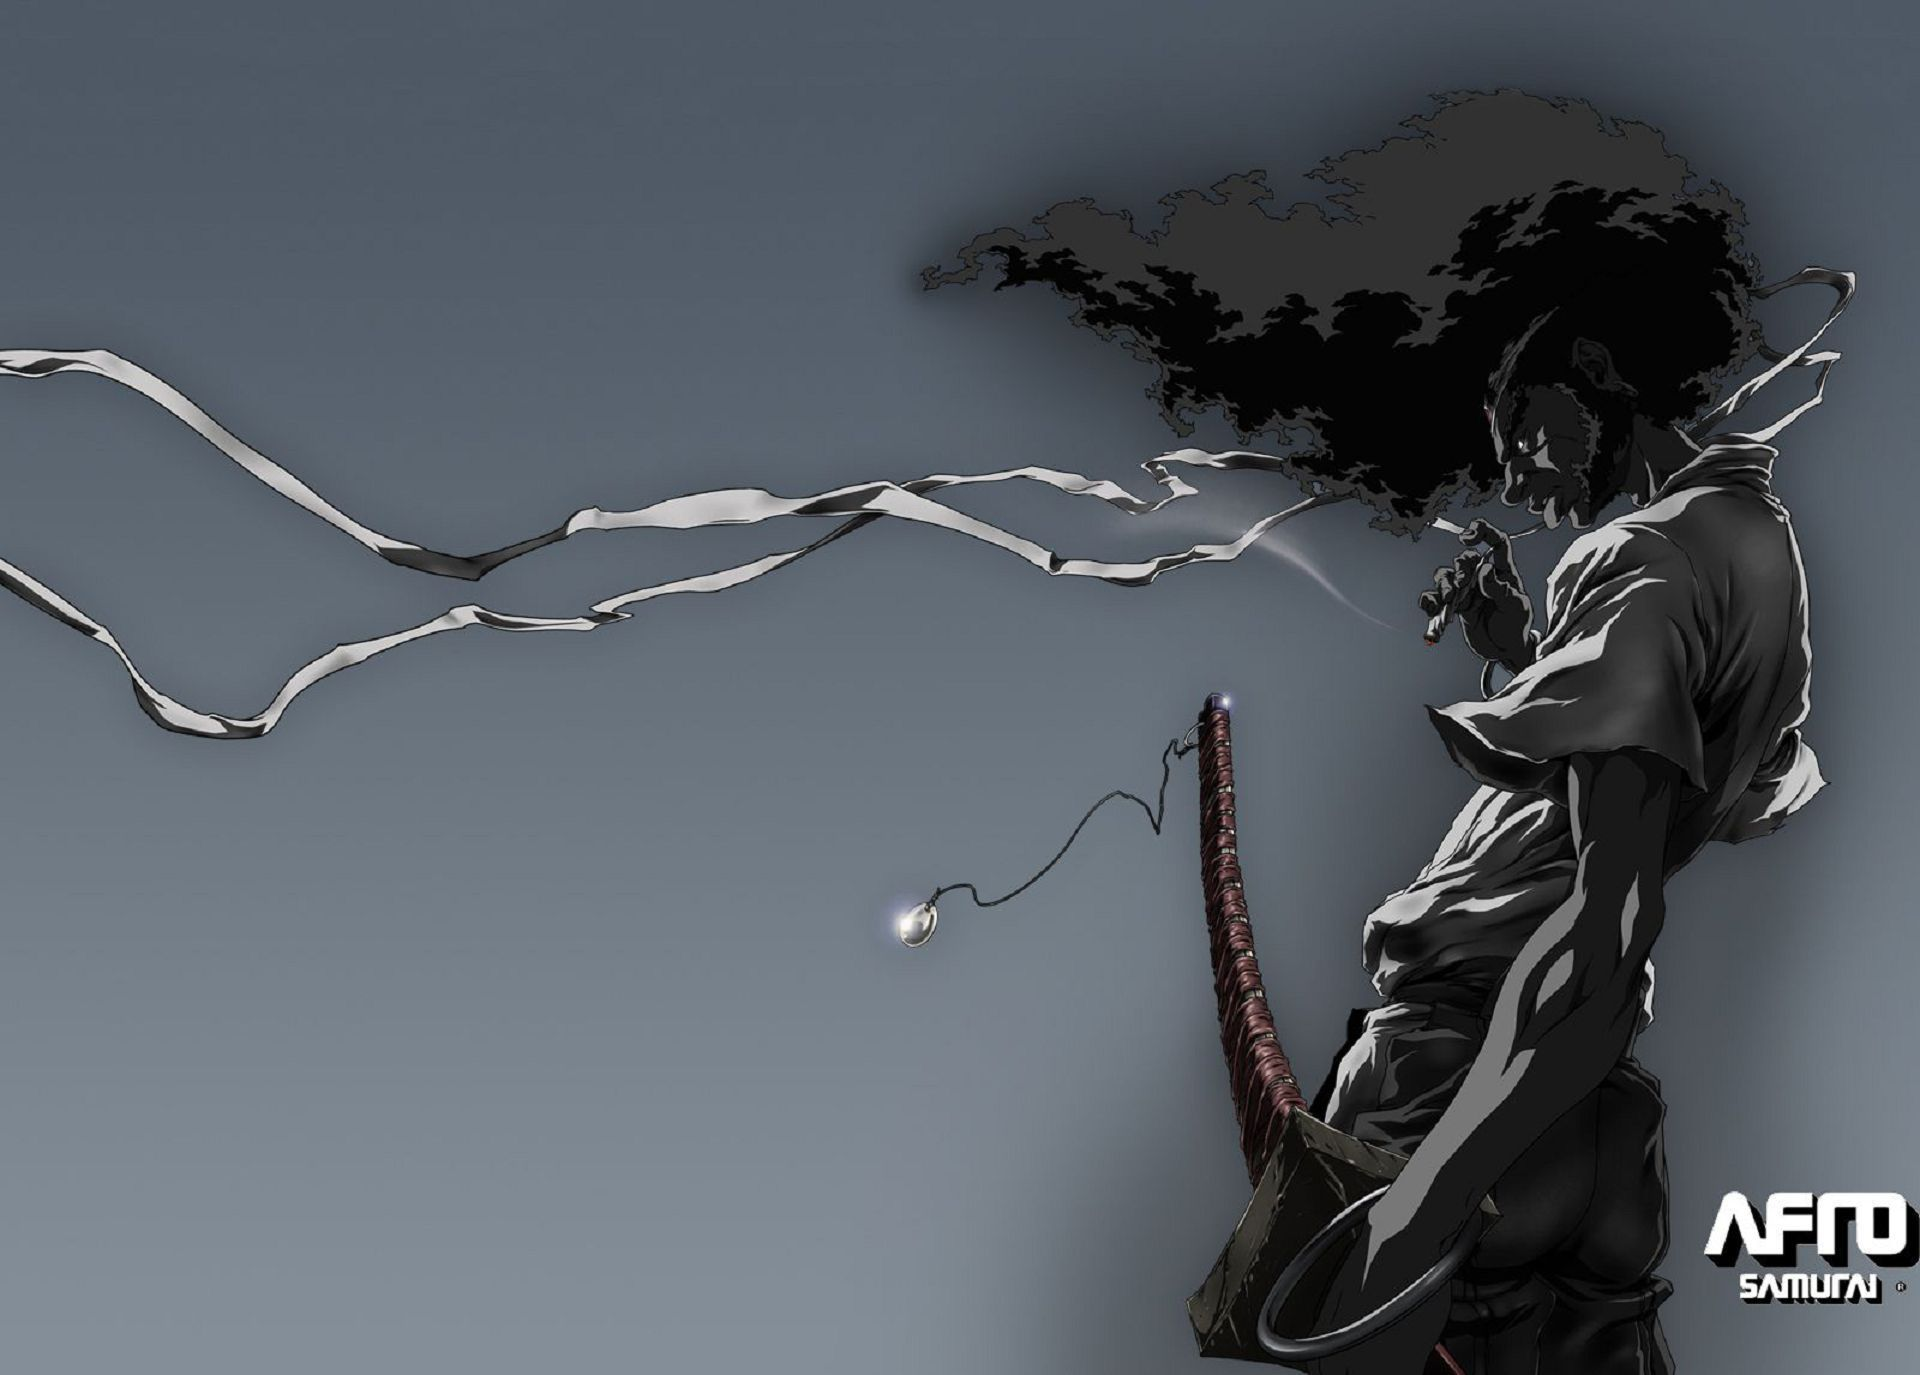 afro samurai wallpapers backgrounds